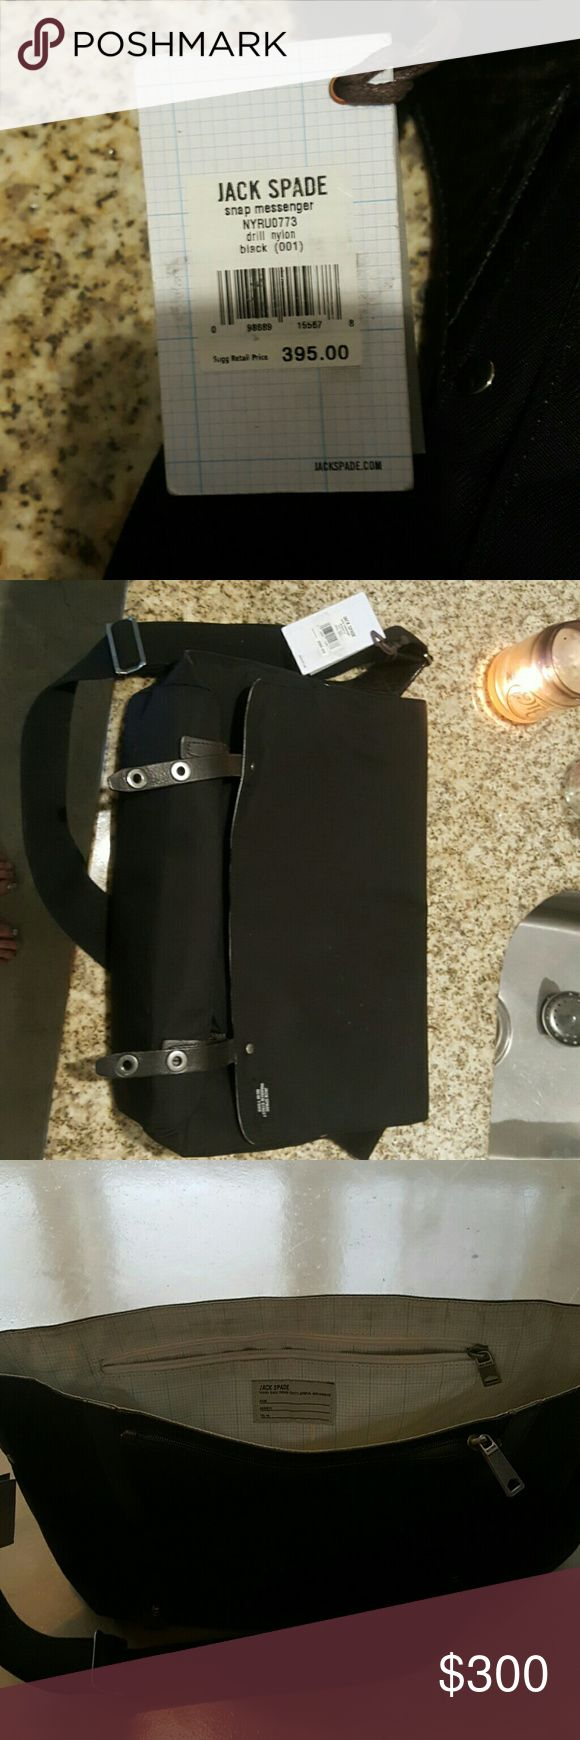 Jack spade snap messanger New with tags Jack Spade Bags Messenger Bags